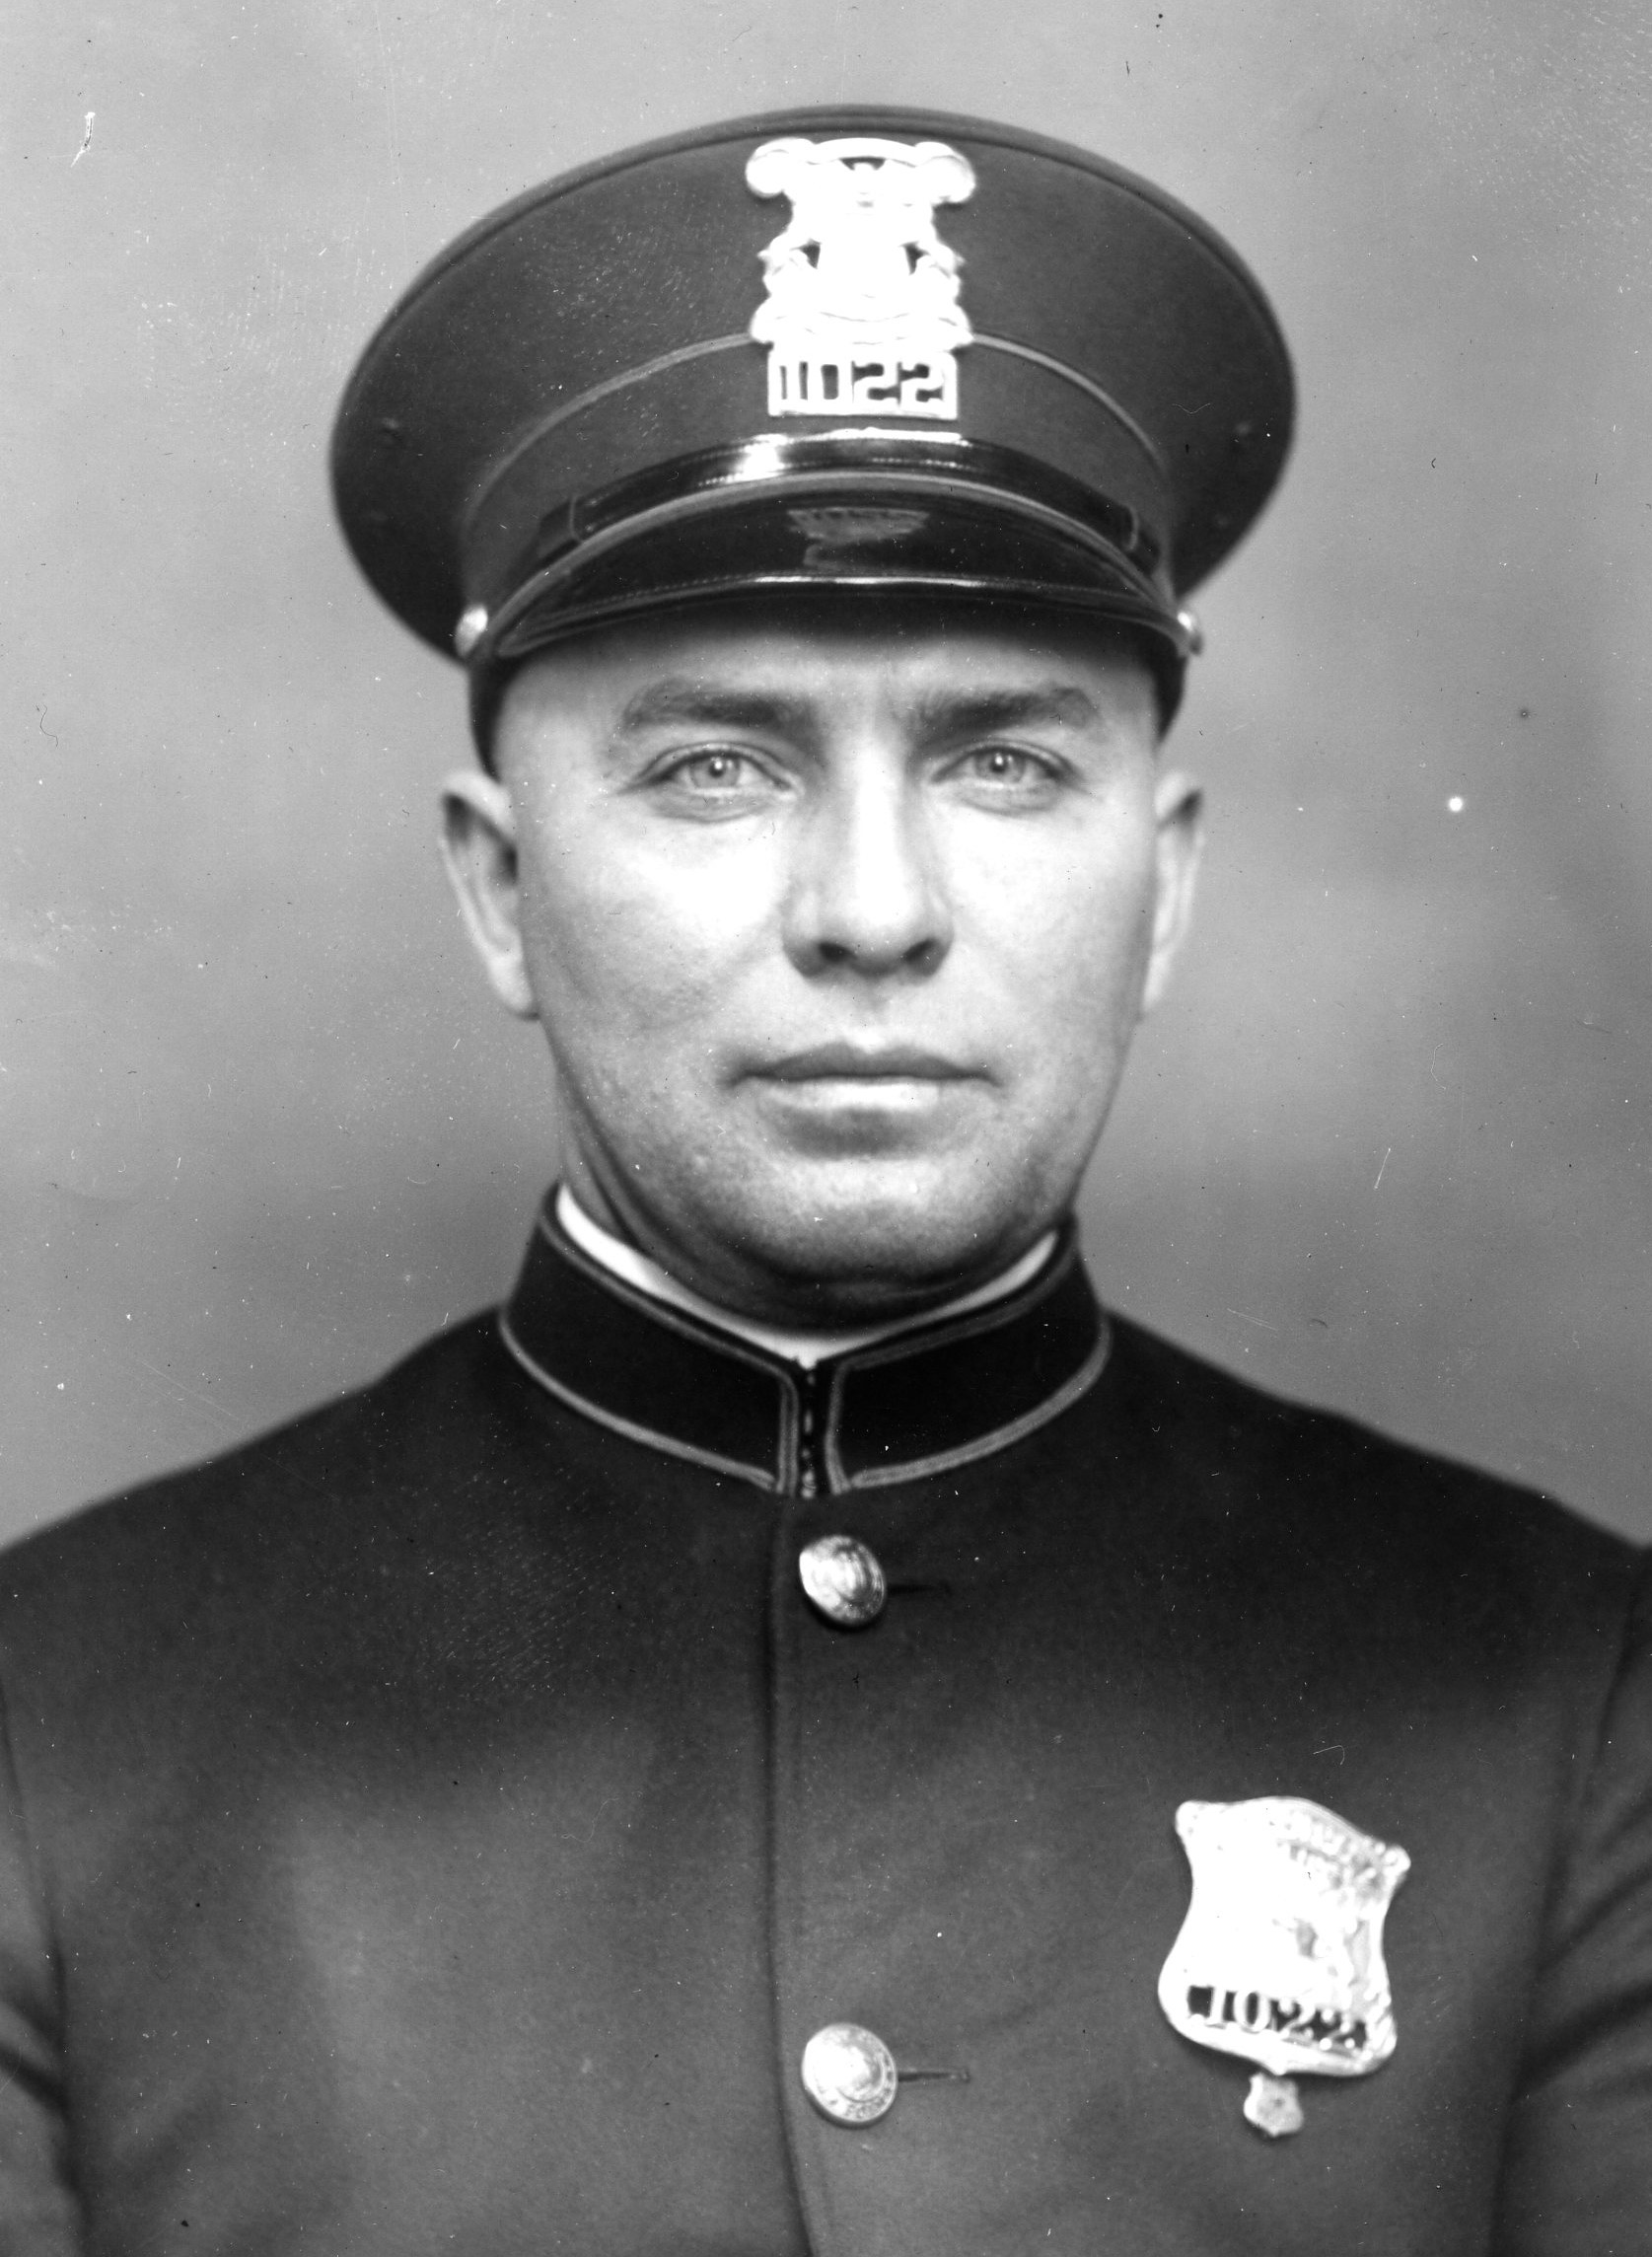 Police Officer Otto August Balk | Detroit Police Department, Michigan